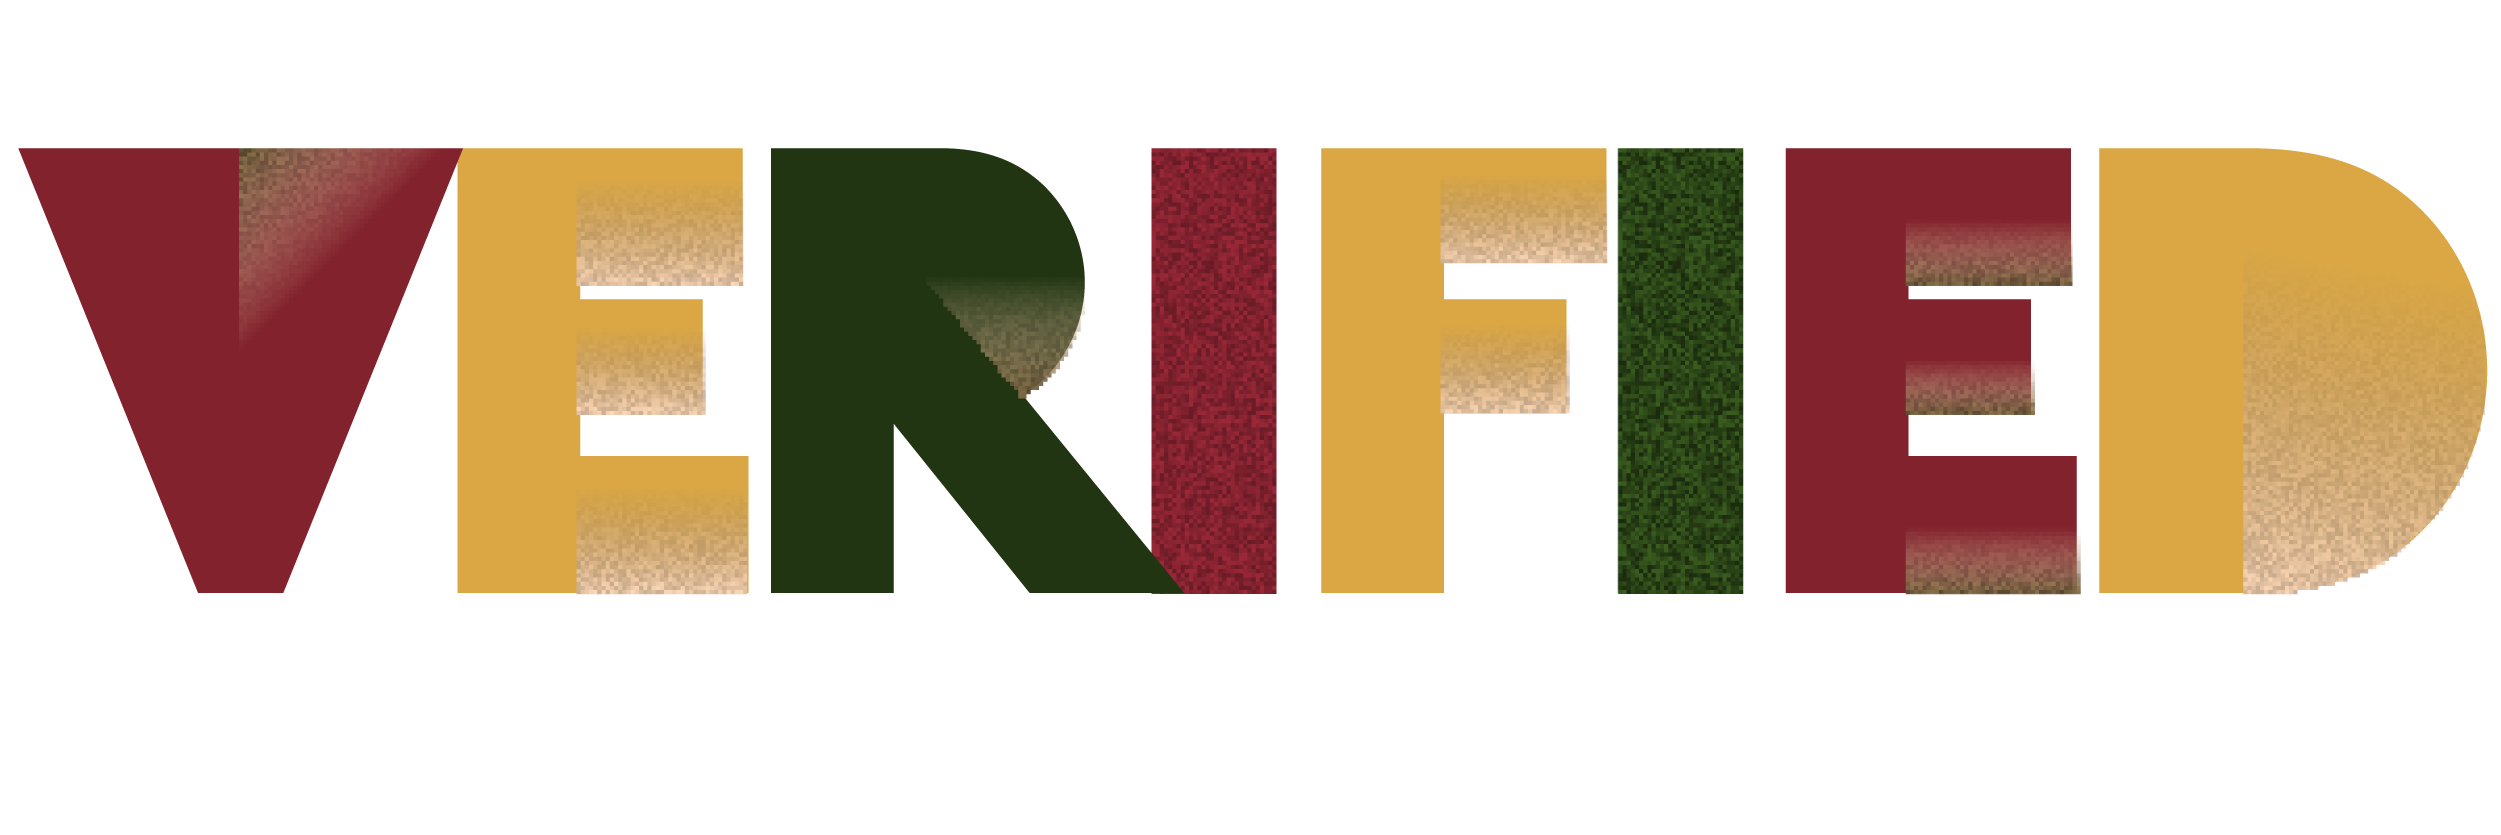 Verified logo red yellow green letters